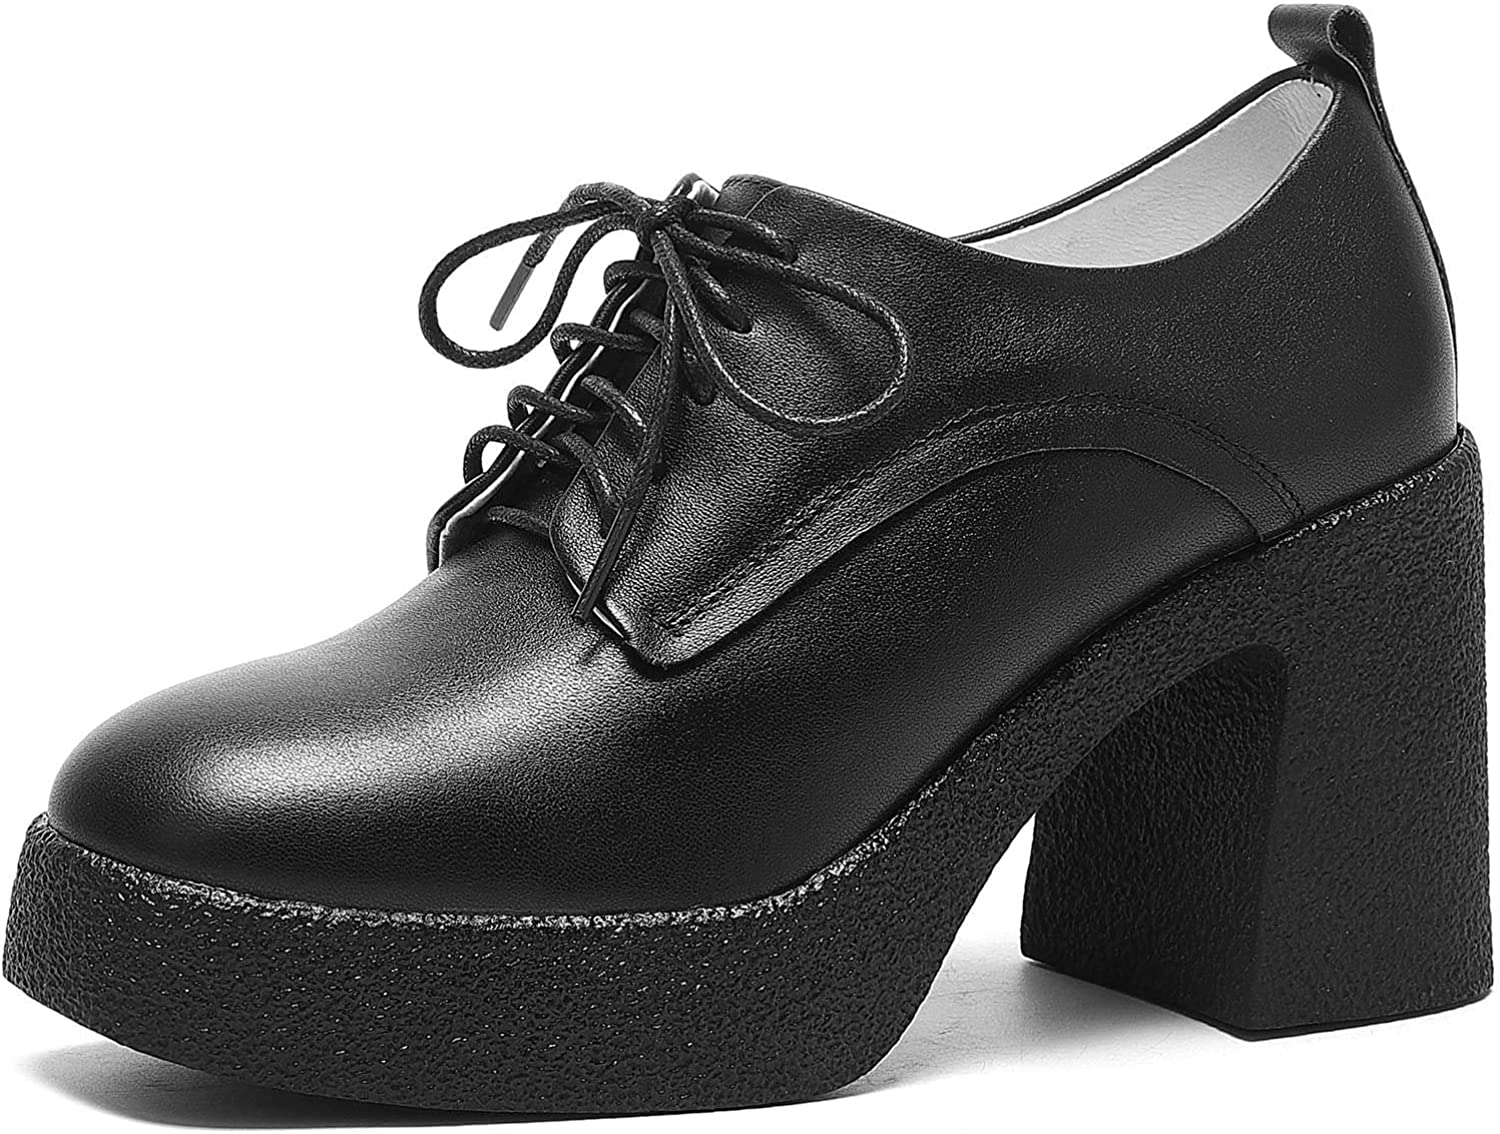 WuORWu Women's Pumps Chunky Selling and selling Heels Oxford Shoes Platform NEW before selling Black An